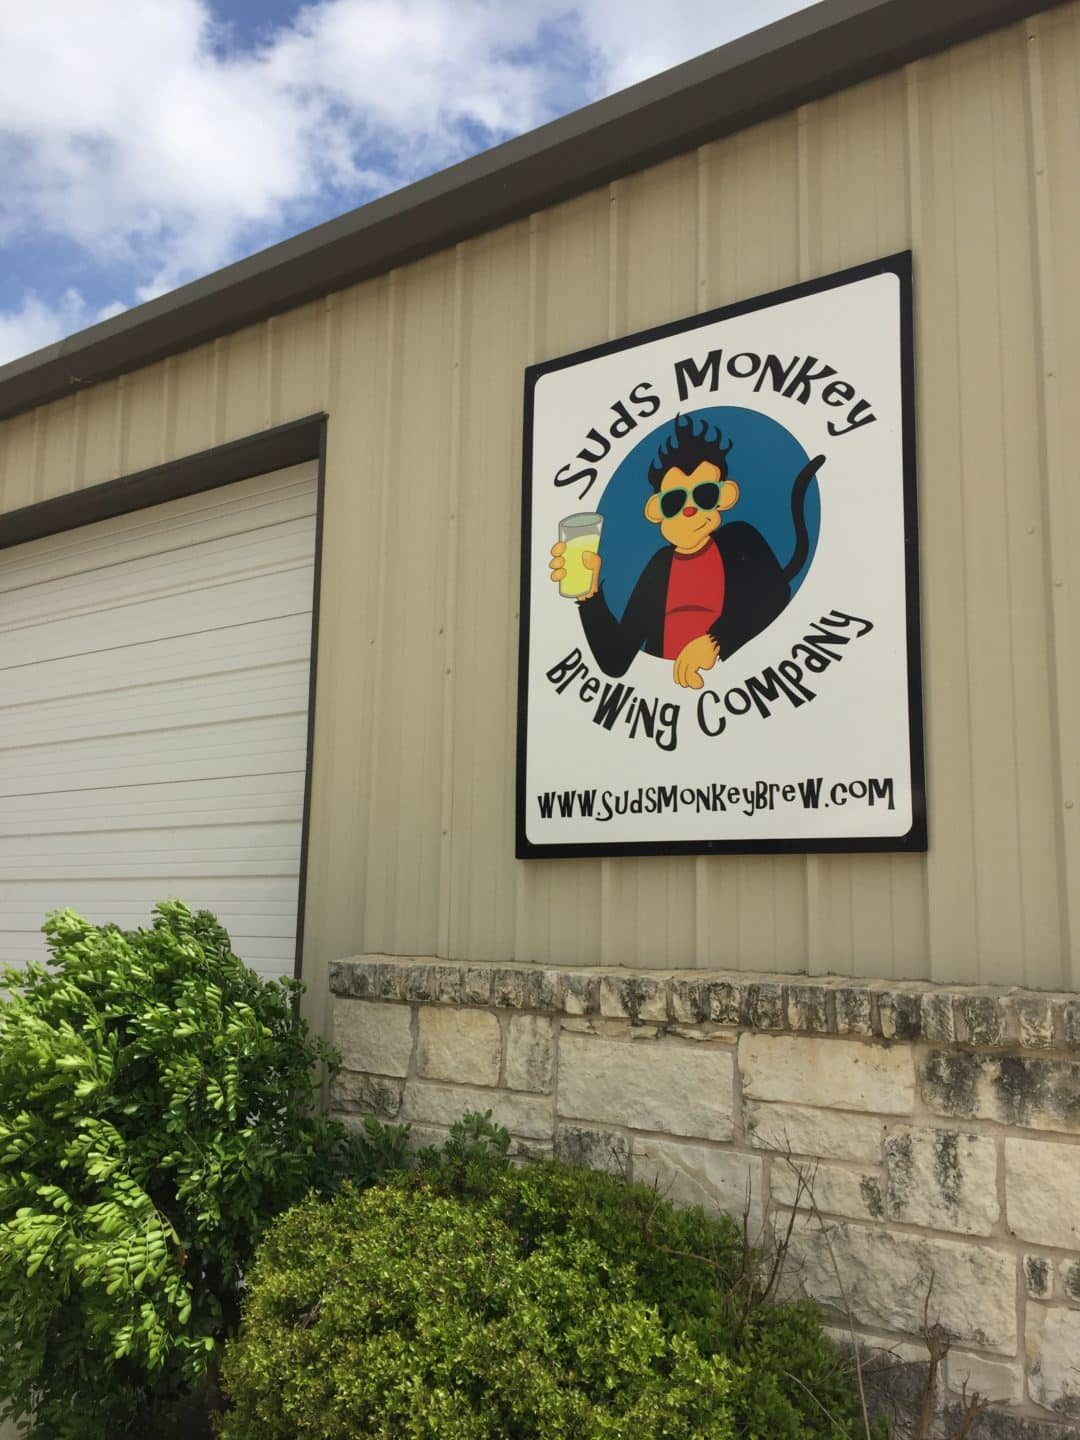 Suds Monkey Brewing Company - Texas Craft Brewery Profile